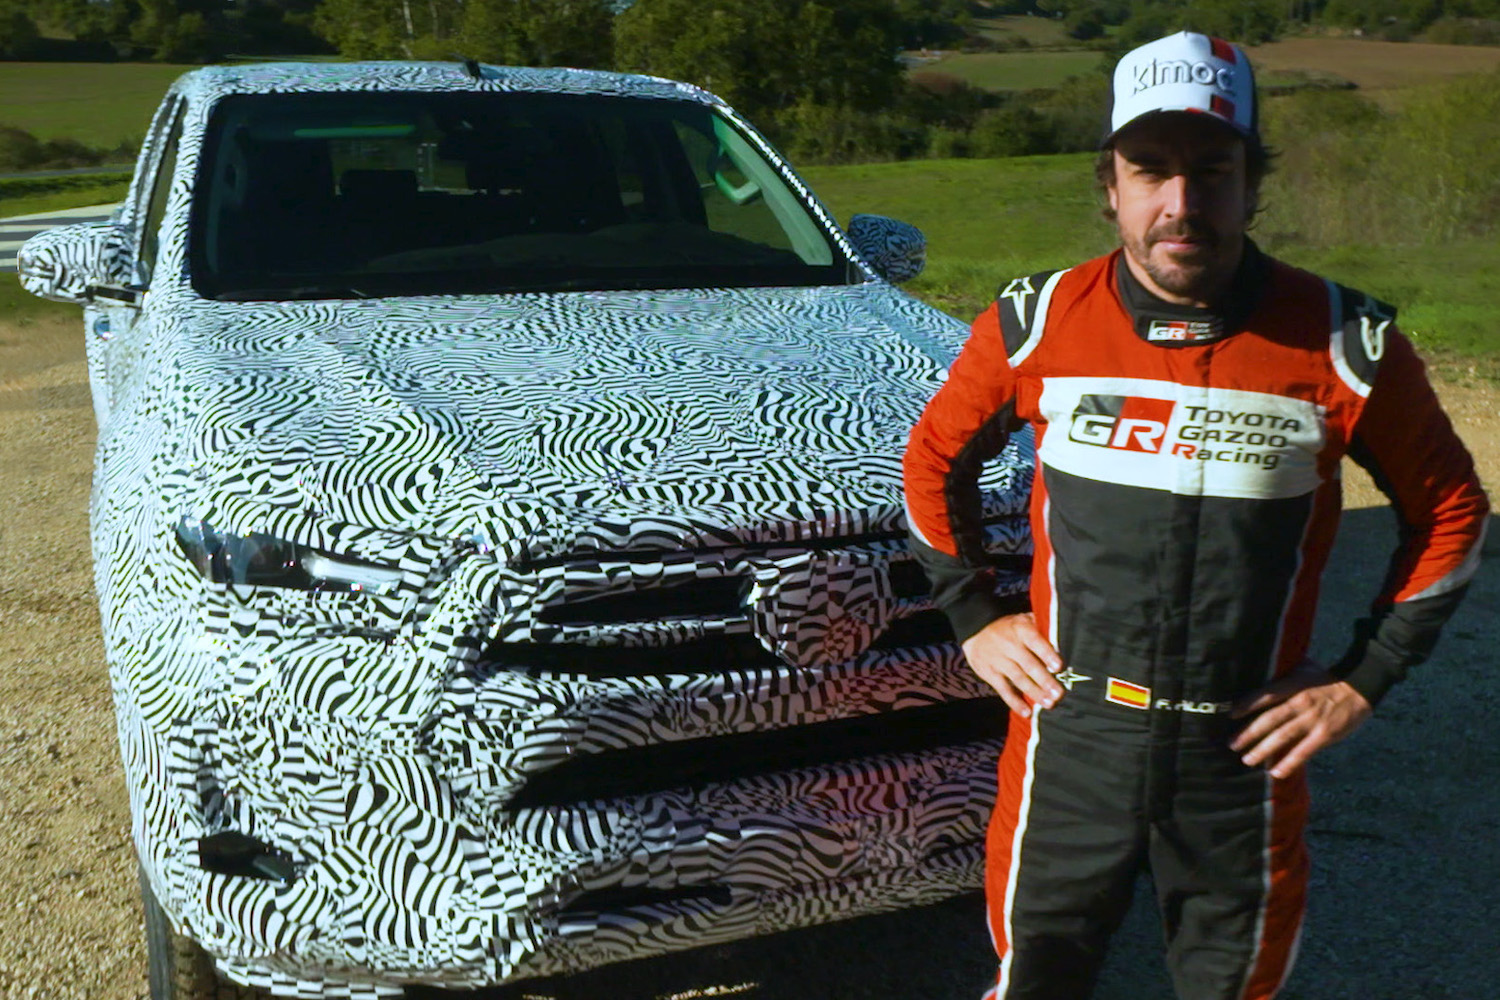 Car News | Fernando Alonso gives new Hilux the thumbs-up